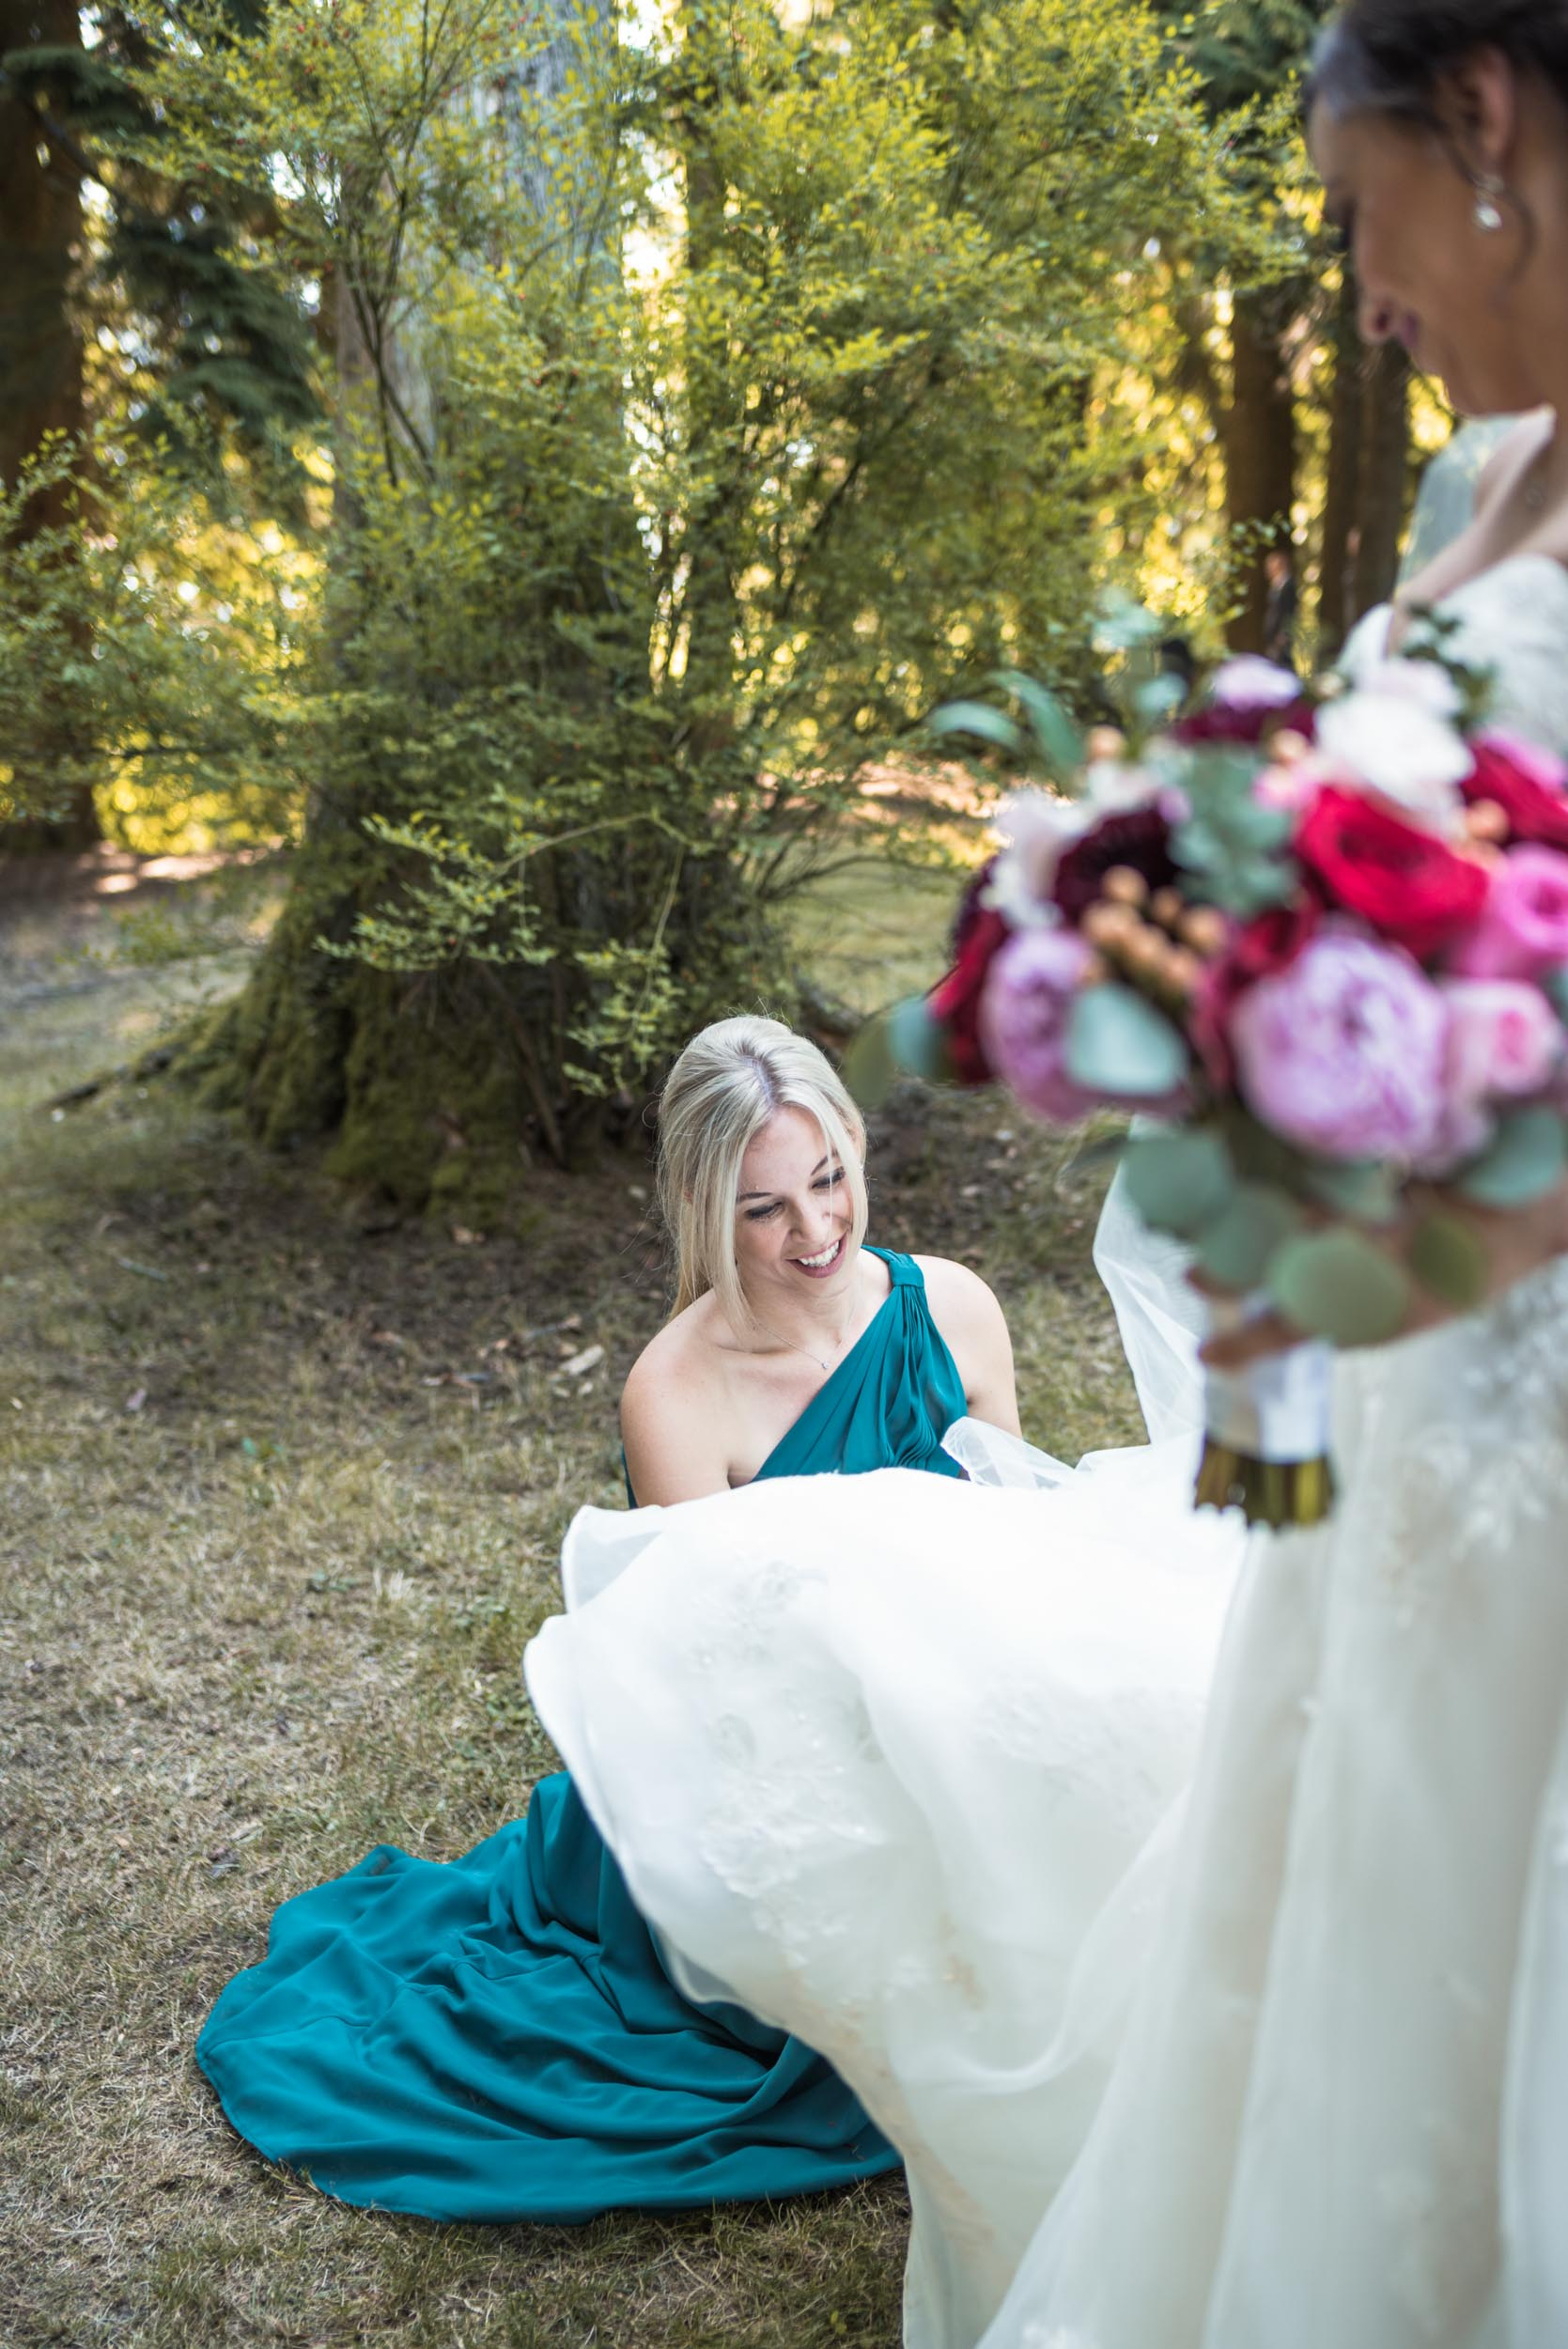 Bride helped with dress by Bridesmaid